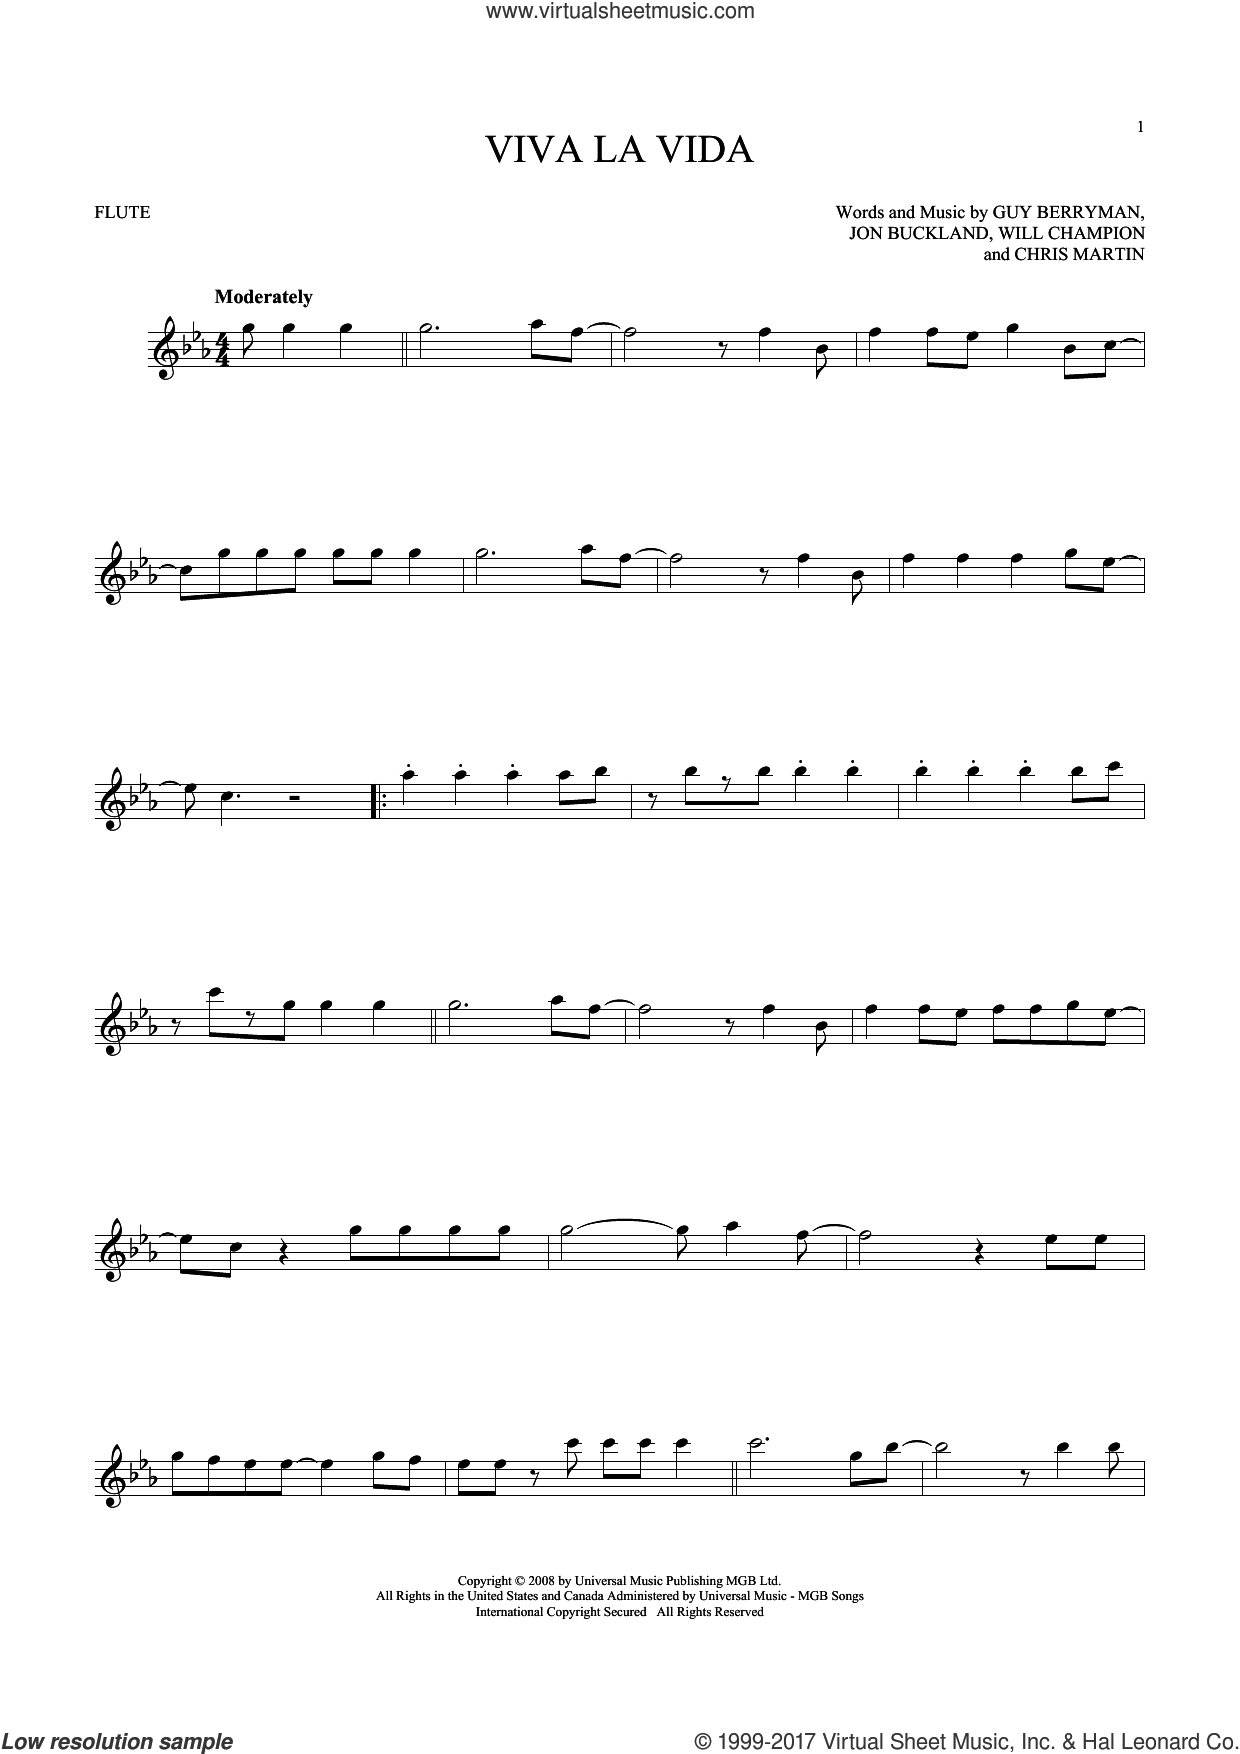 Viva La Vida sheet music for flute solo by Chris Martin, Coldplay, Guy Berryman, Jon Buckland and Will Champion, intermediate skill level